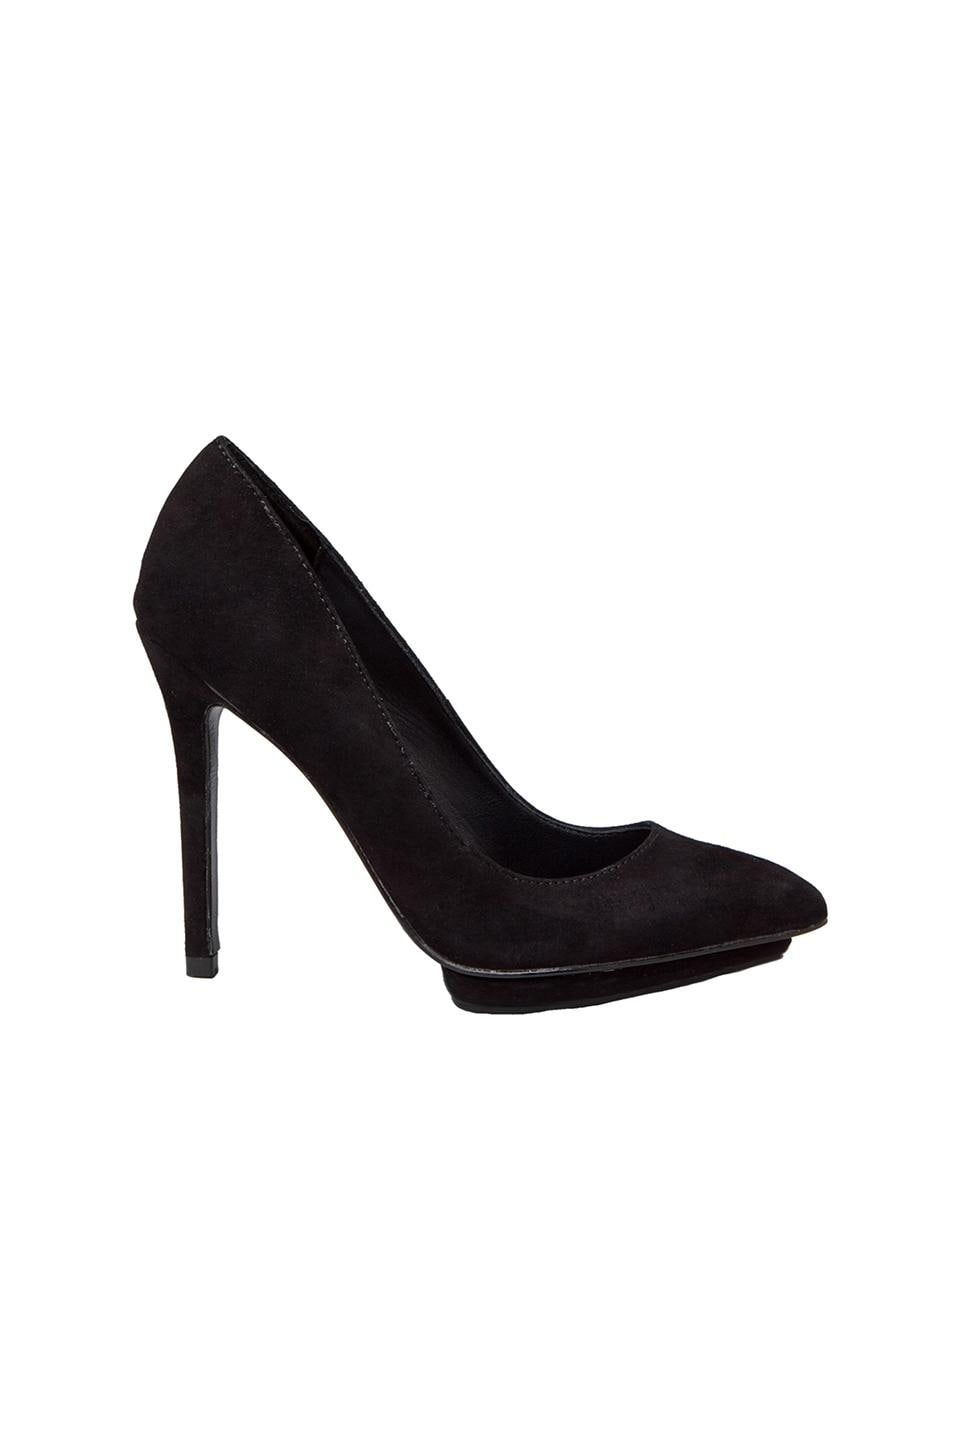 Dolce Vita Bella Pump in Black Suede